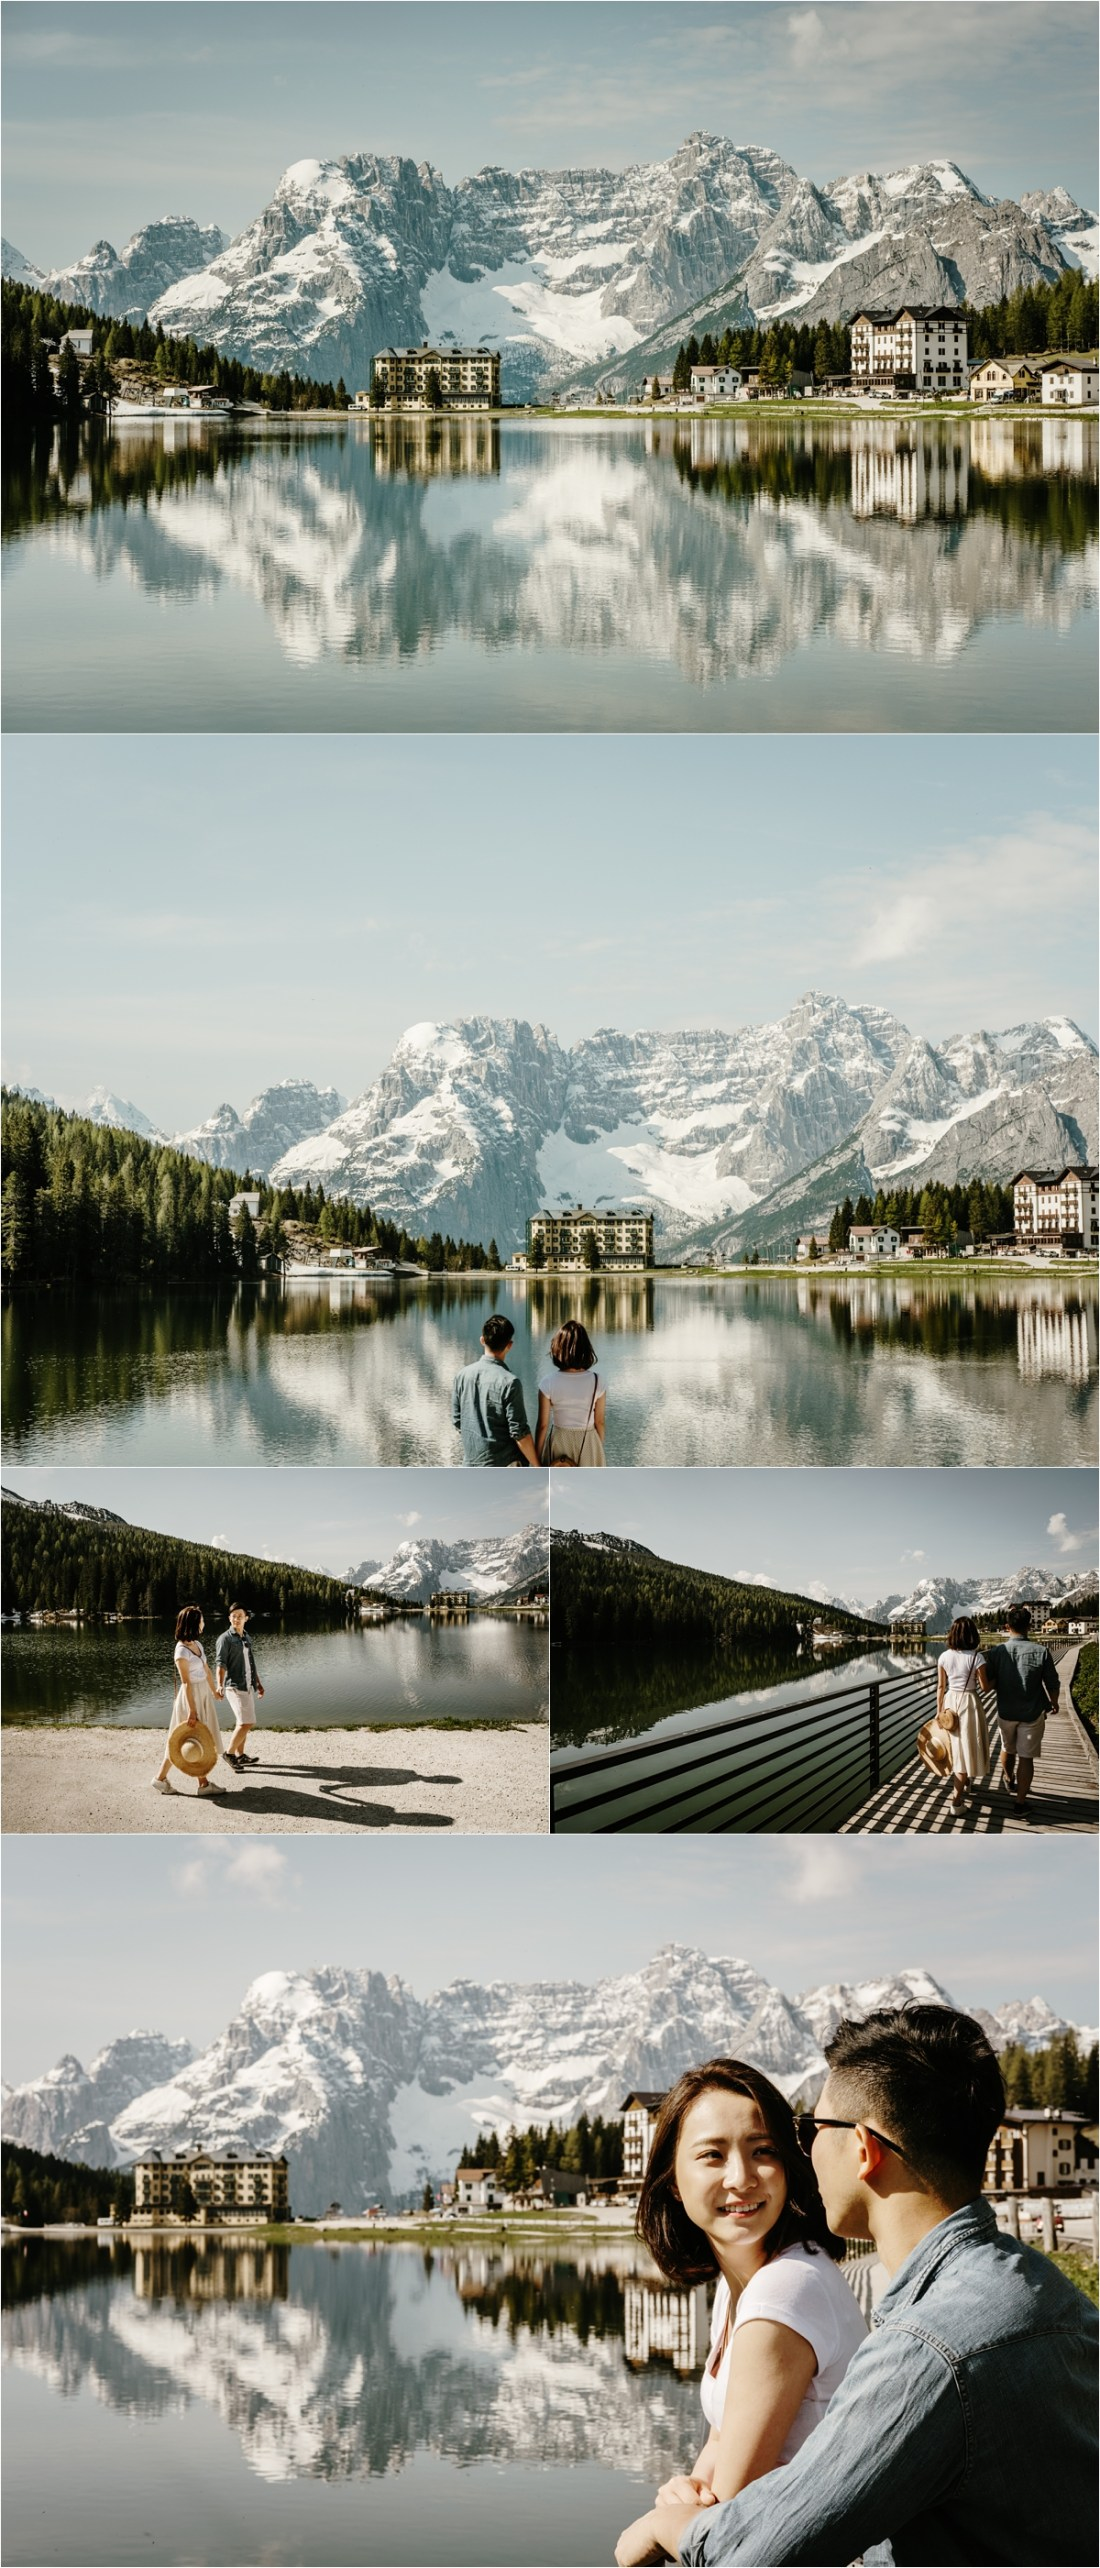 An engagement shoot at Lake Misurina in the Italian Alps by Wild Connections Photography